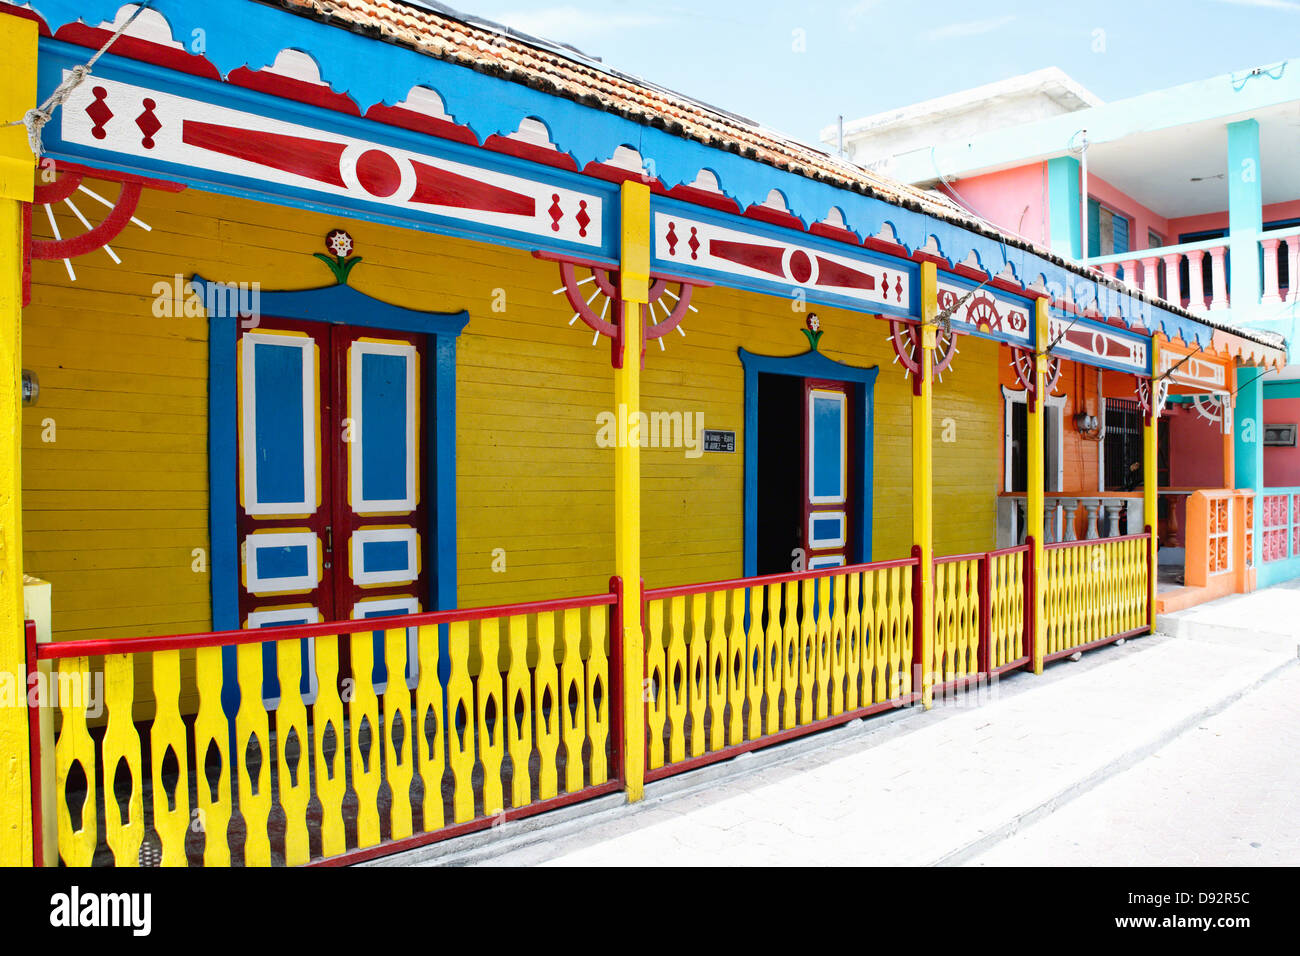 Colorful Traditional House on a Street, Isla Mujeres, Quintana Roo, Mexico - Stock Image